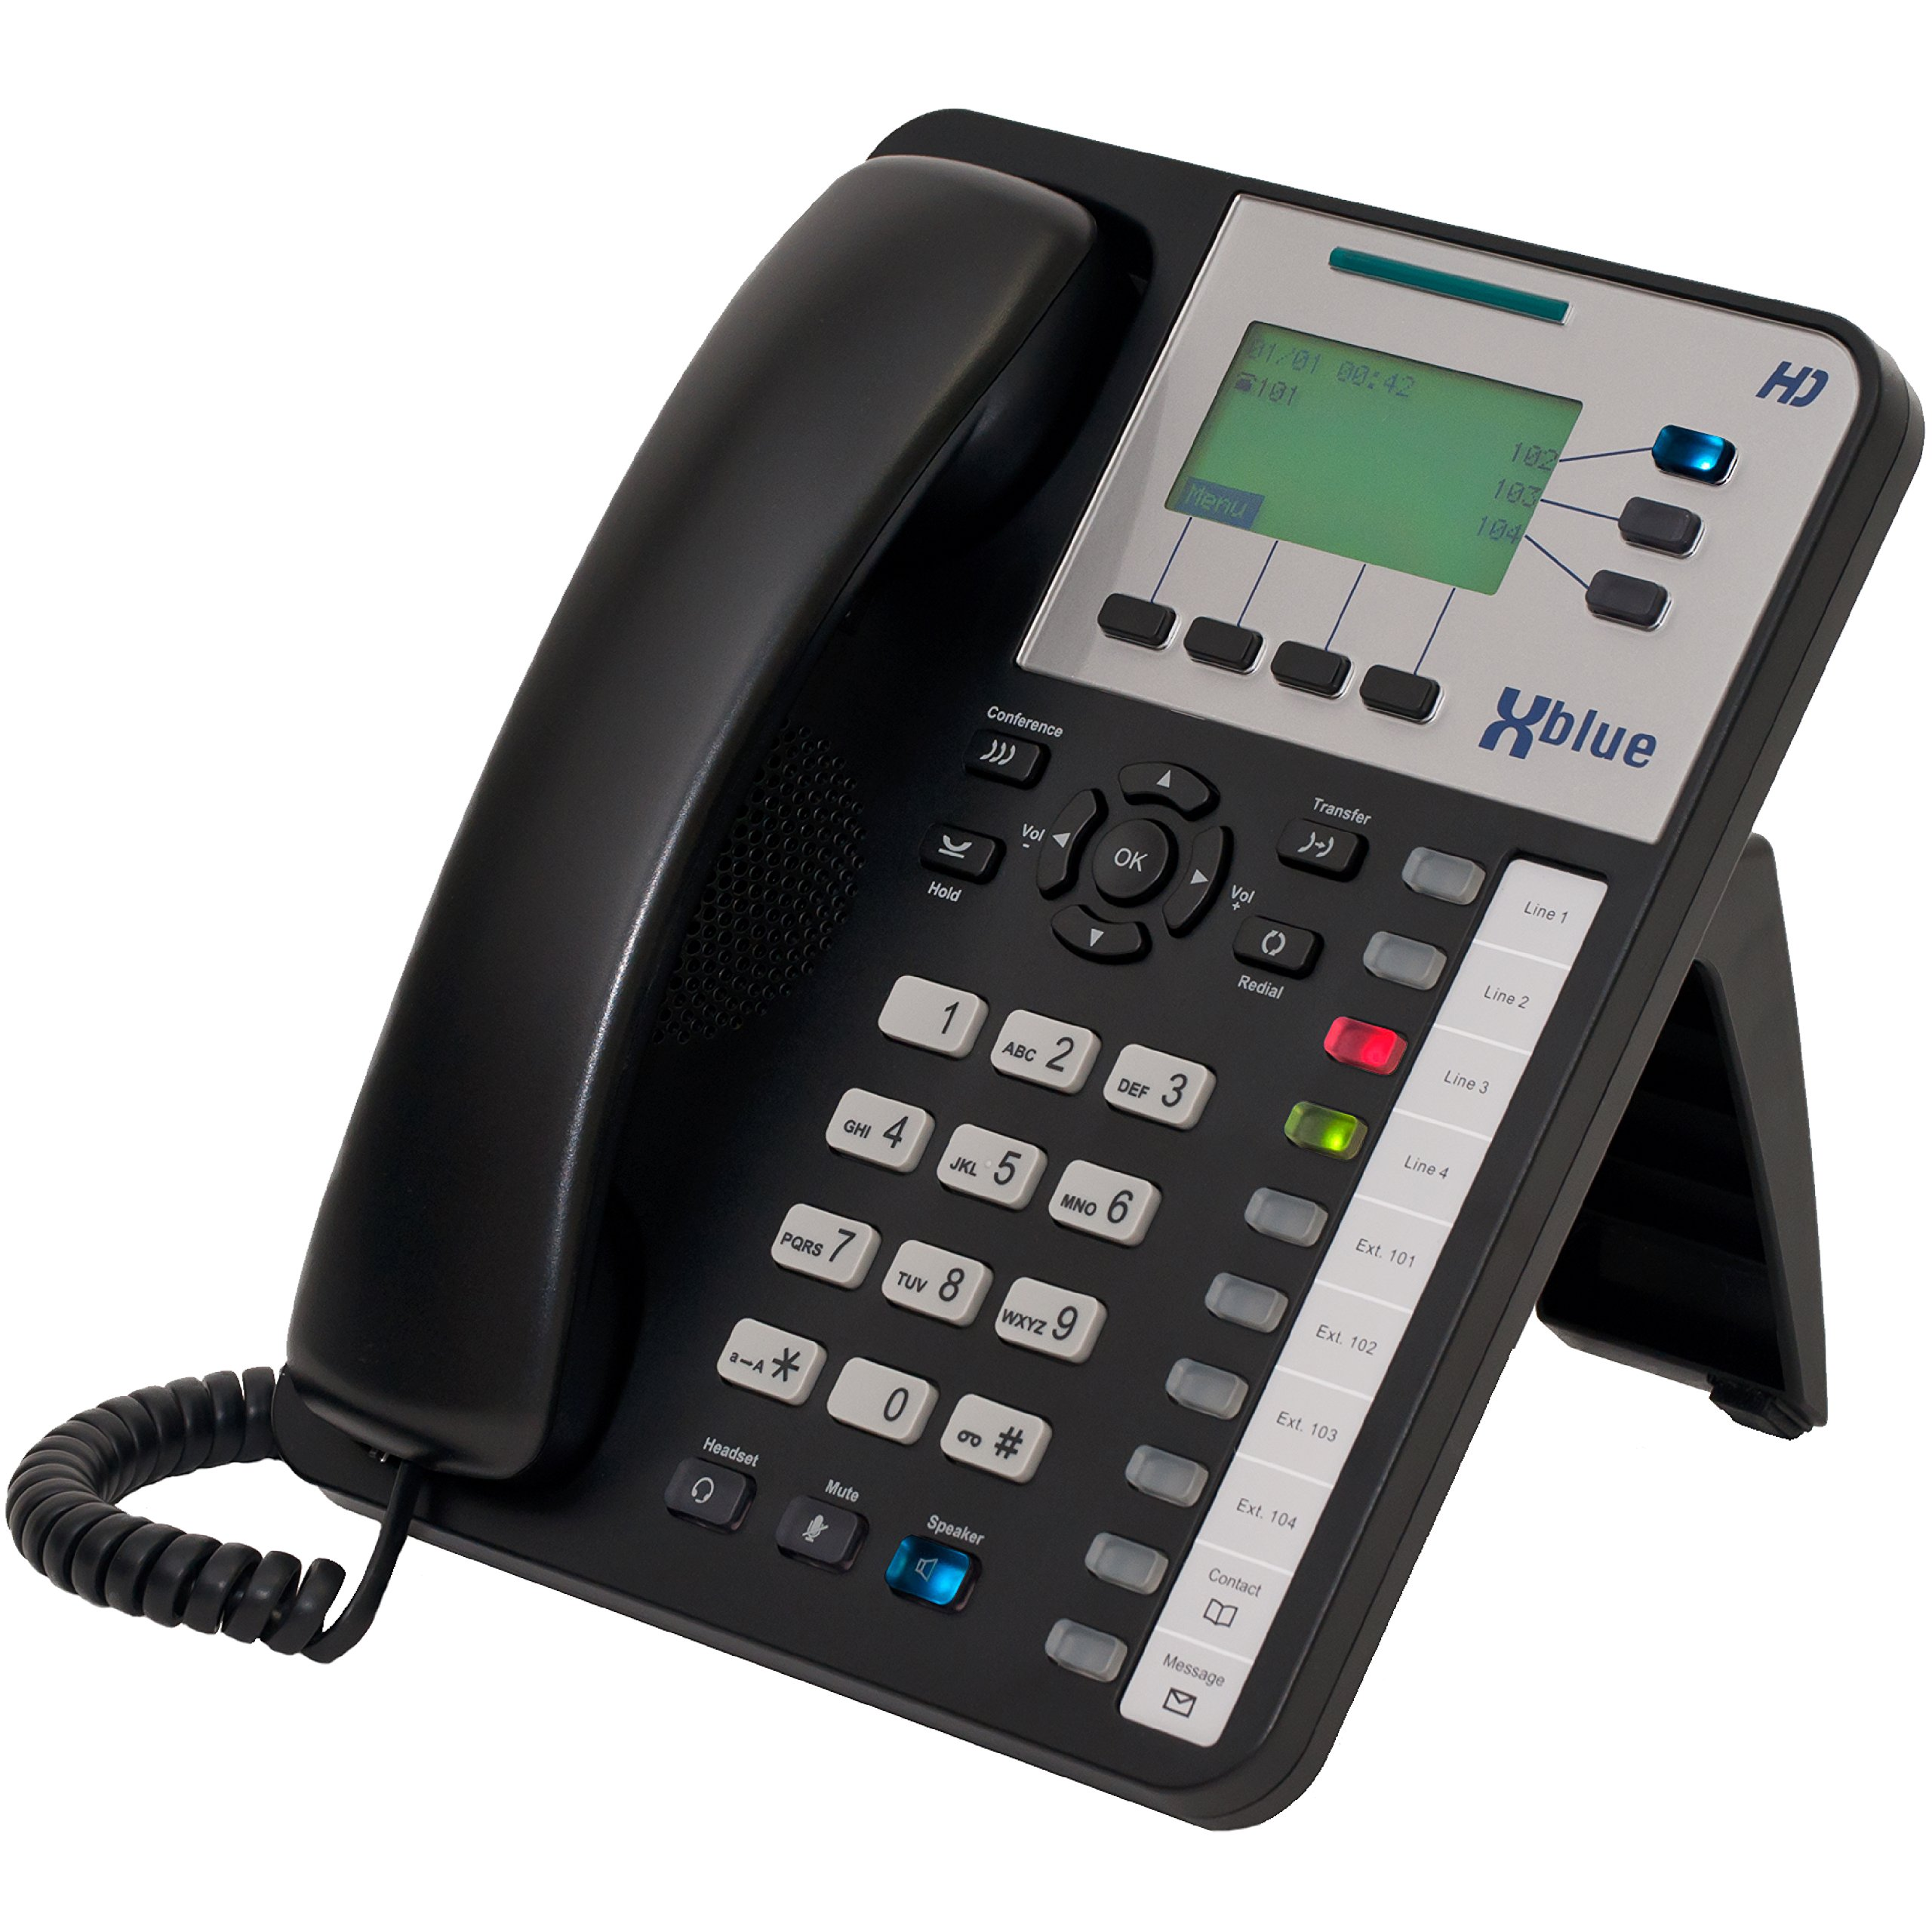 XBLUE X3030 HD Office Phone (47-7002) for X25 & X50 Systems - (11) Programmable Buttons, Speakerphone & Power Supply by Xblue